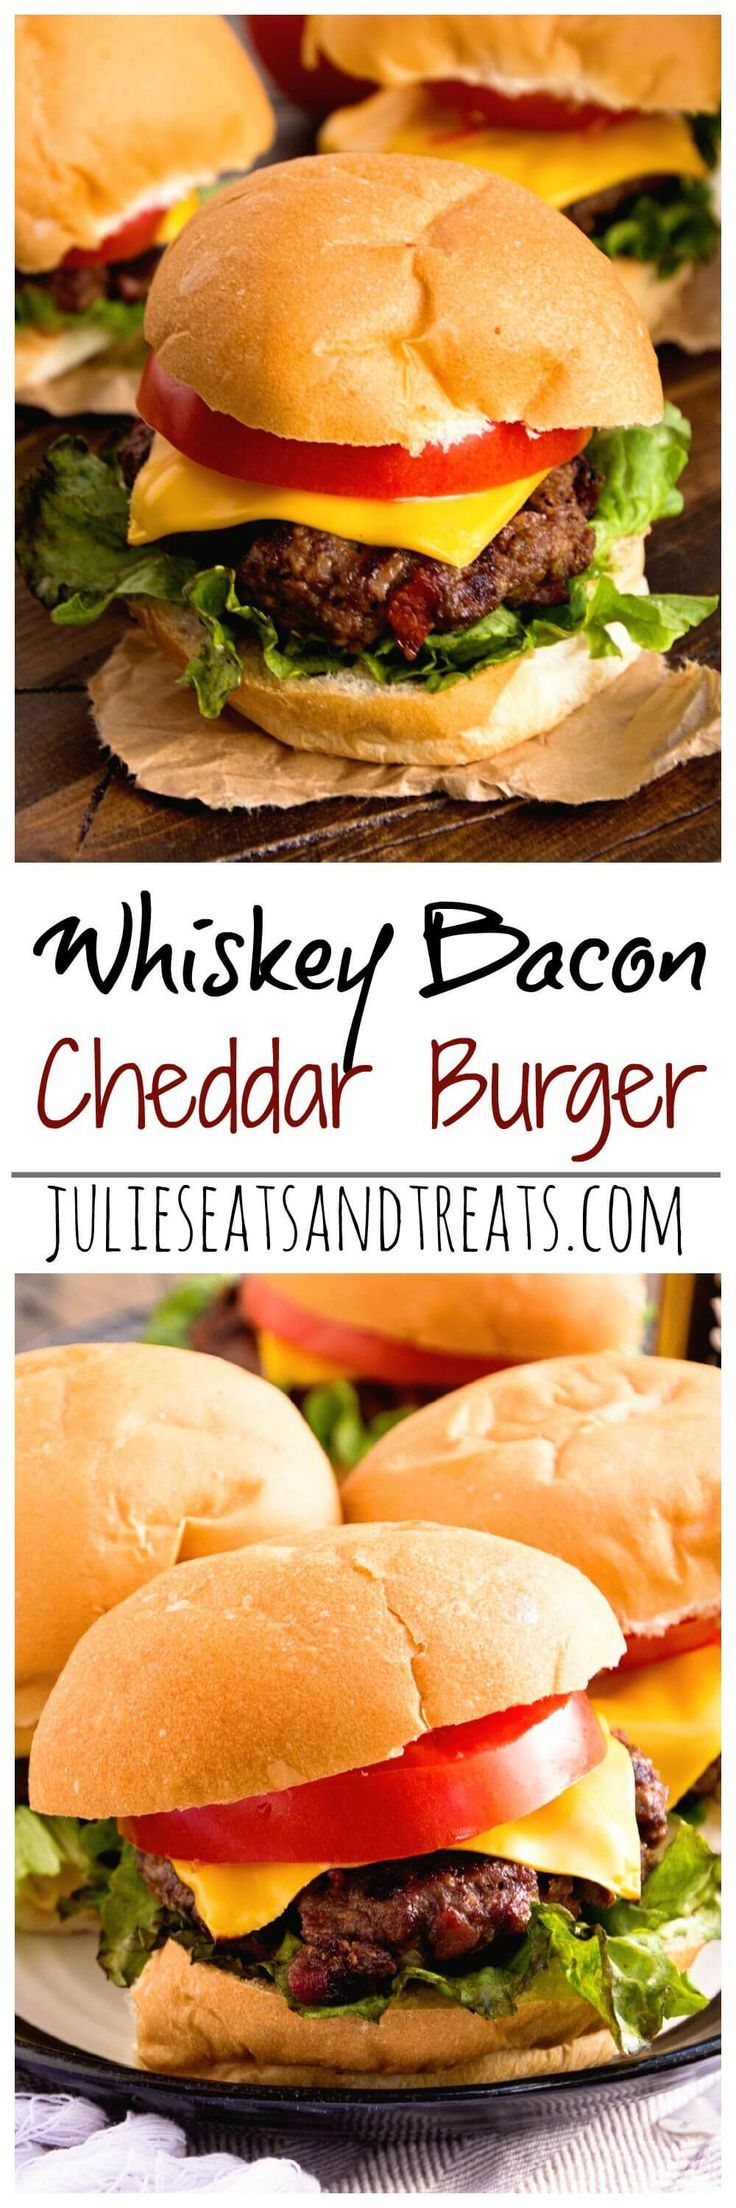 Whiskey Bacon Cheddar Burger ~ Plump, Juicy Burger with a Hint of Whiskey and Loaded with Bacon and Cheddar Cheese! The Perfect Burger Recipe for Grilling! ~ http://www.julieseatsandtreats.com